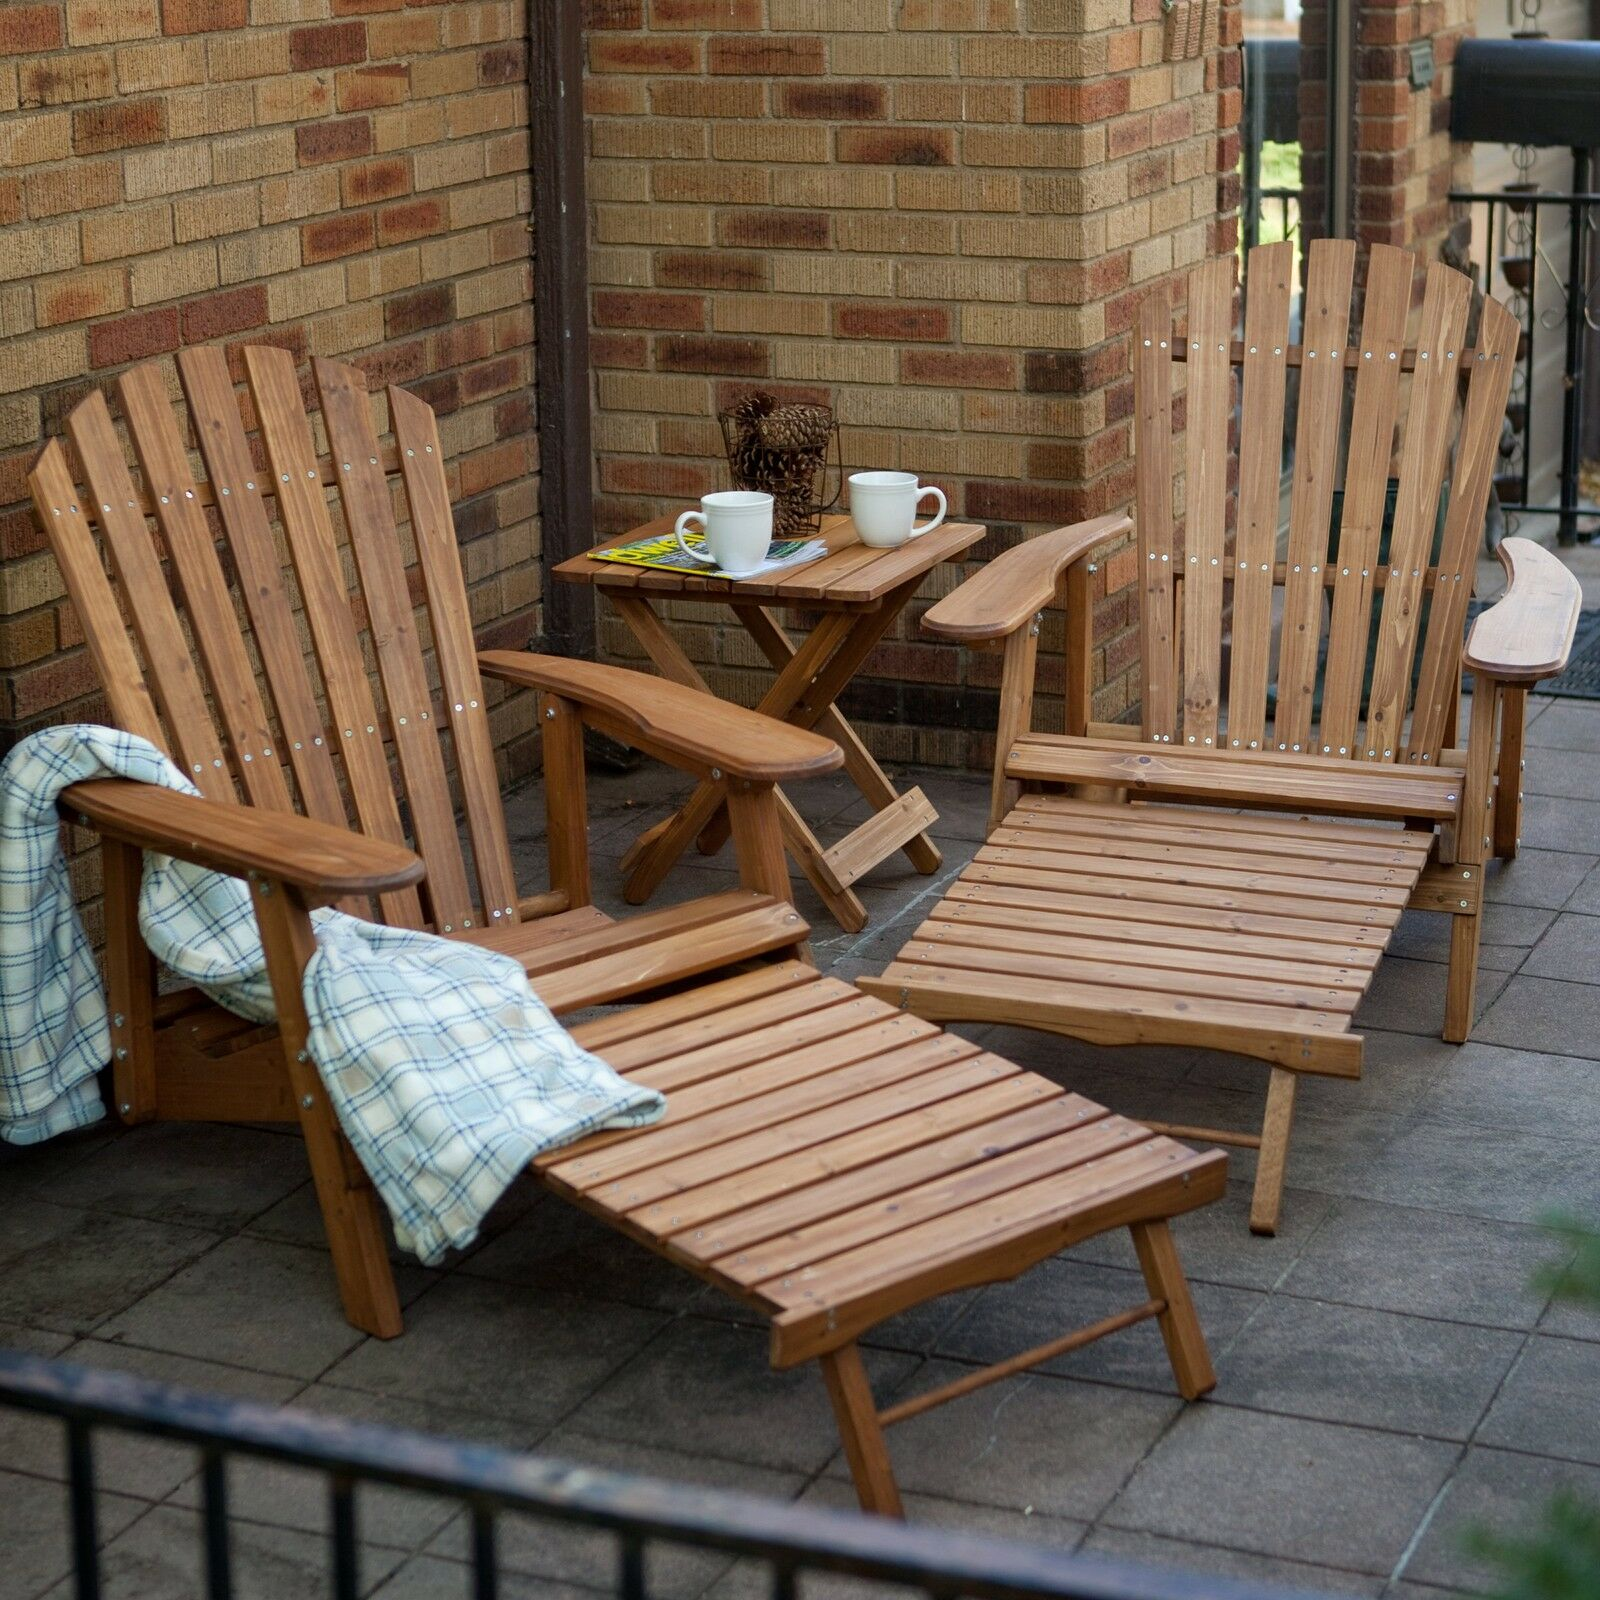 3 Piece Natural Brown Pull Out Ottoman Adirondack Bistro Set Outdoor Furniture